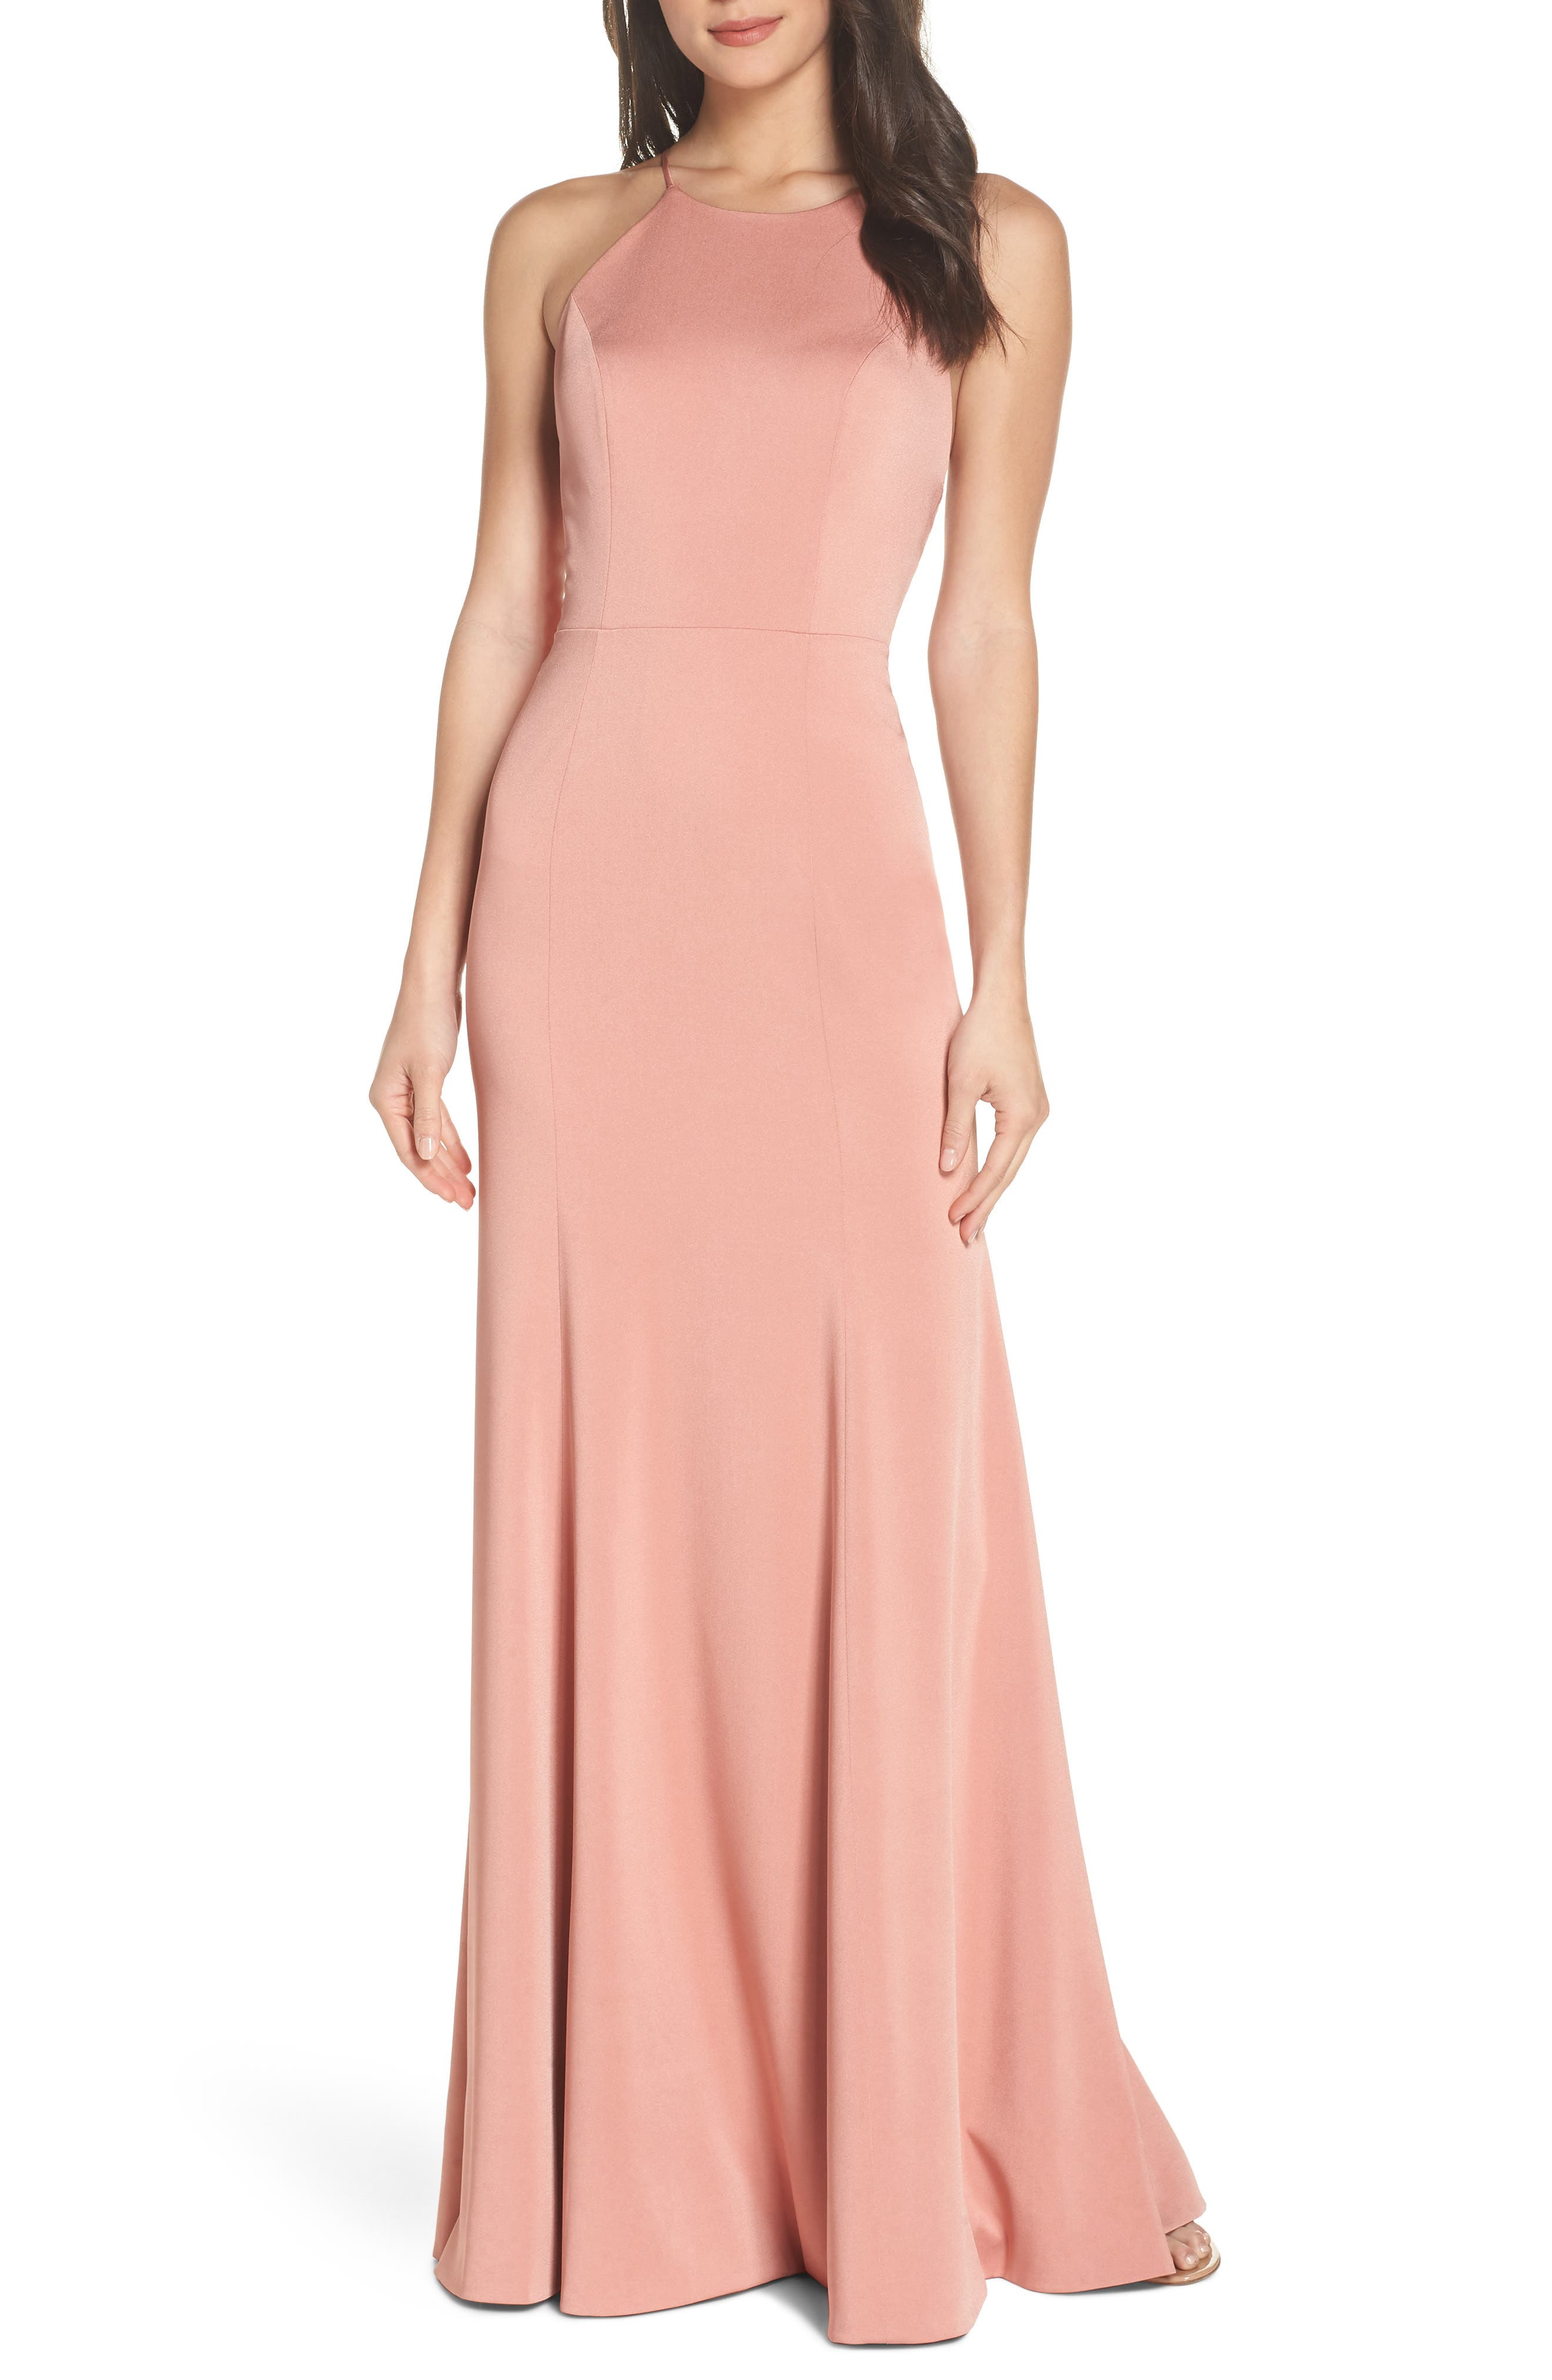 Naomi Luxe Crepe Halter Gown,                         Main,                         color, Sedona Sunset